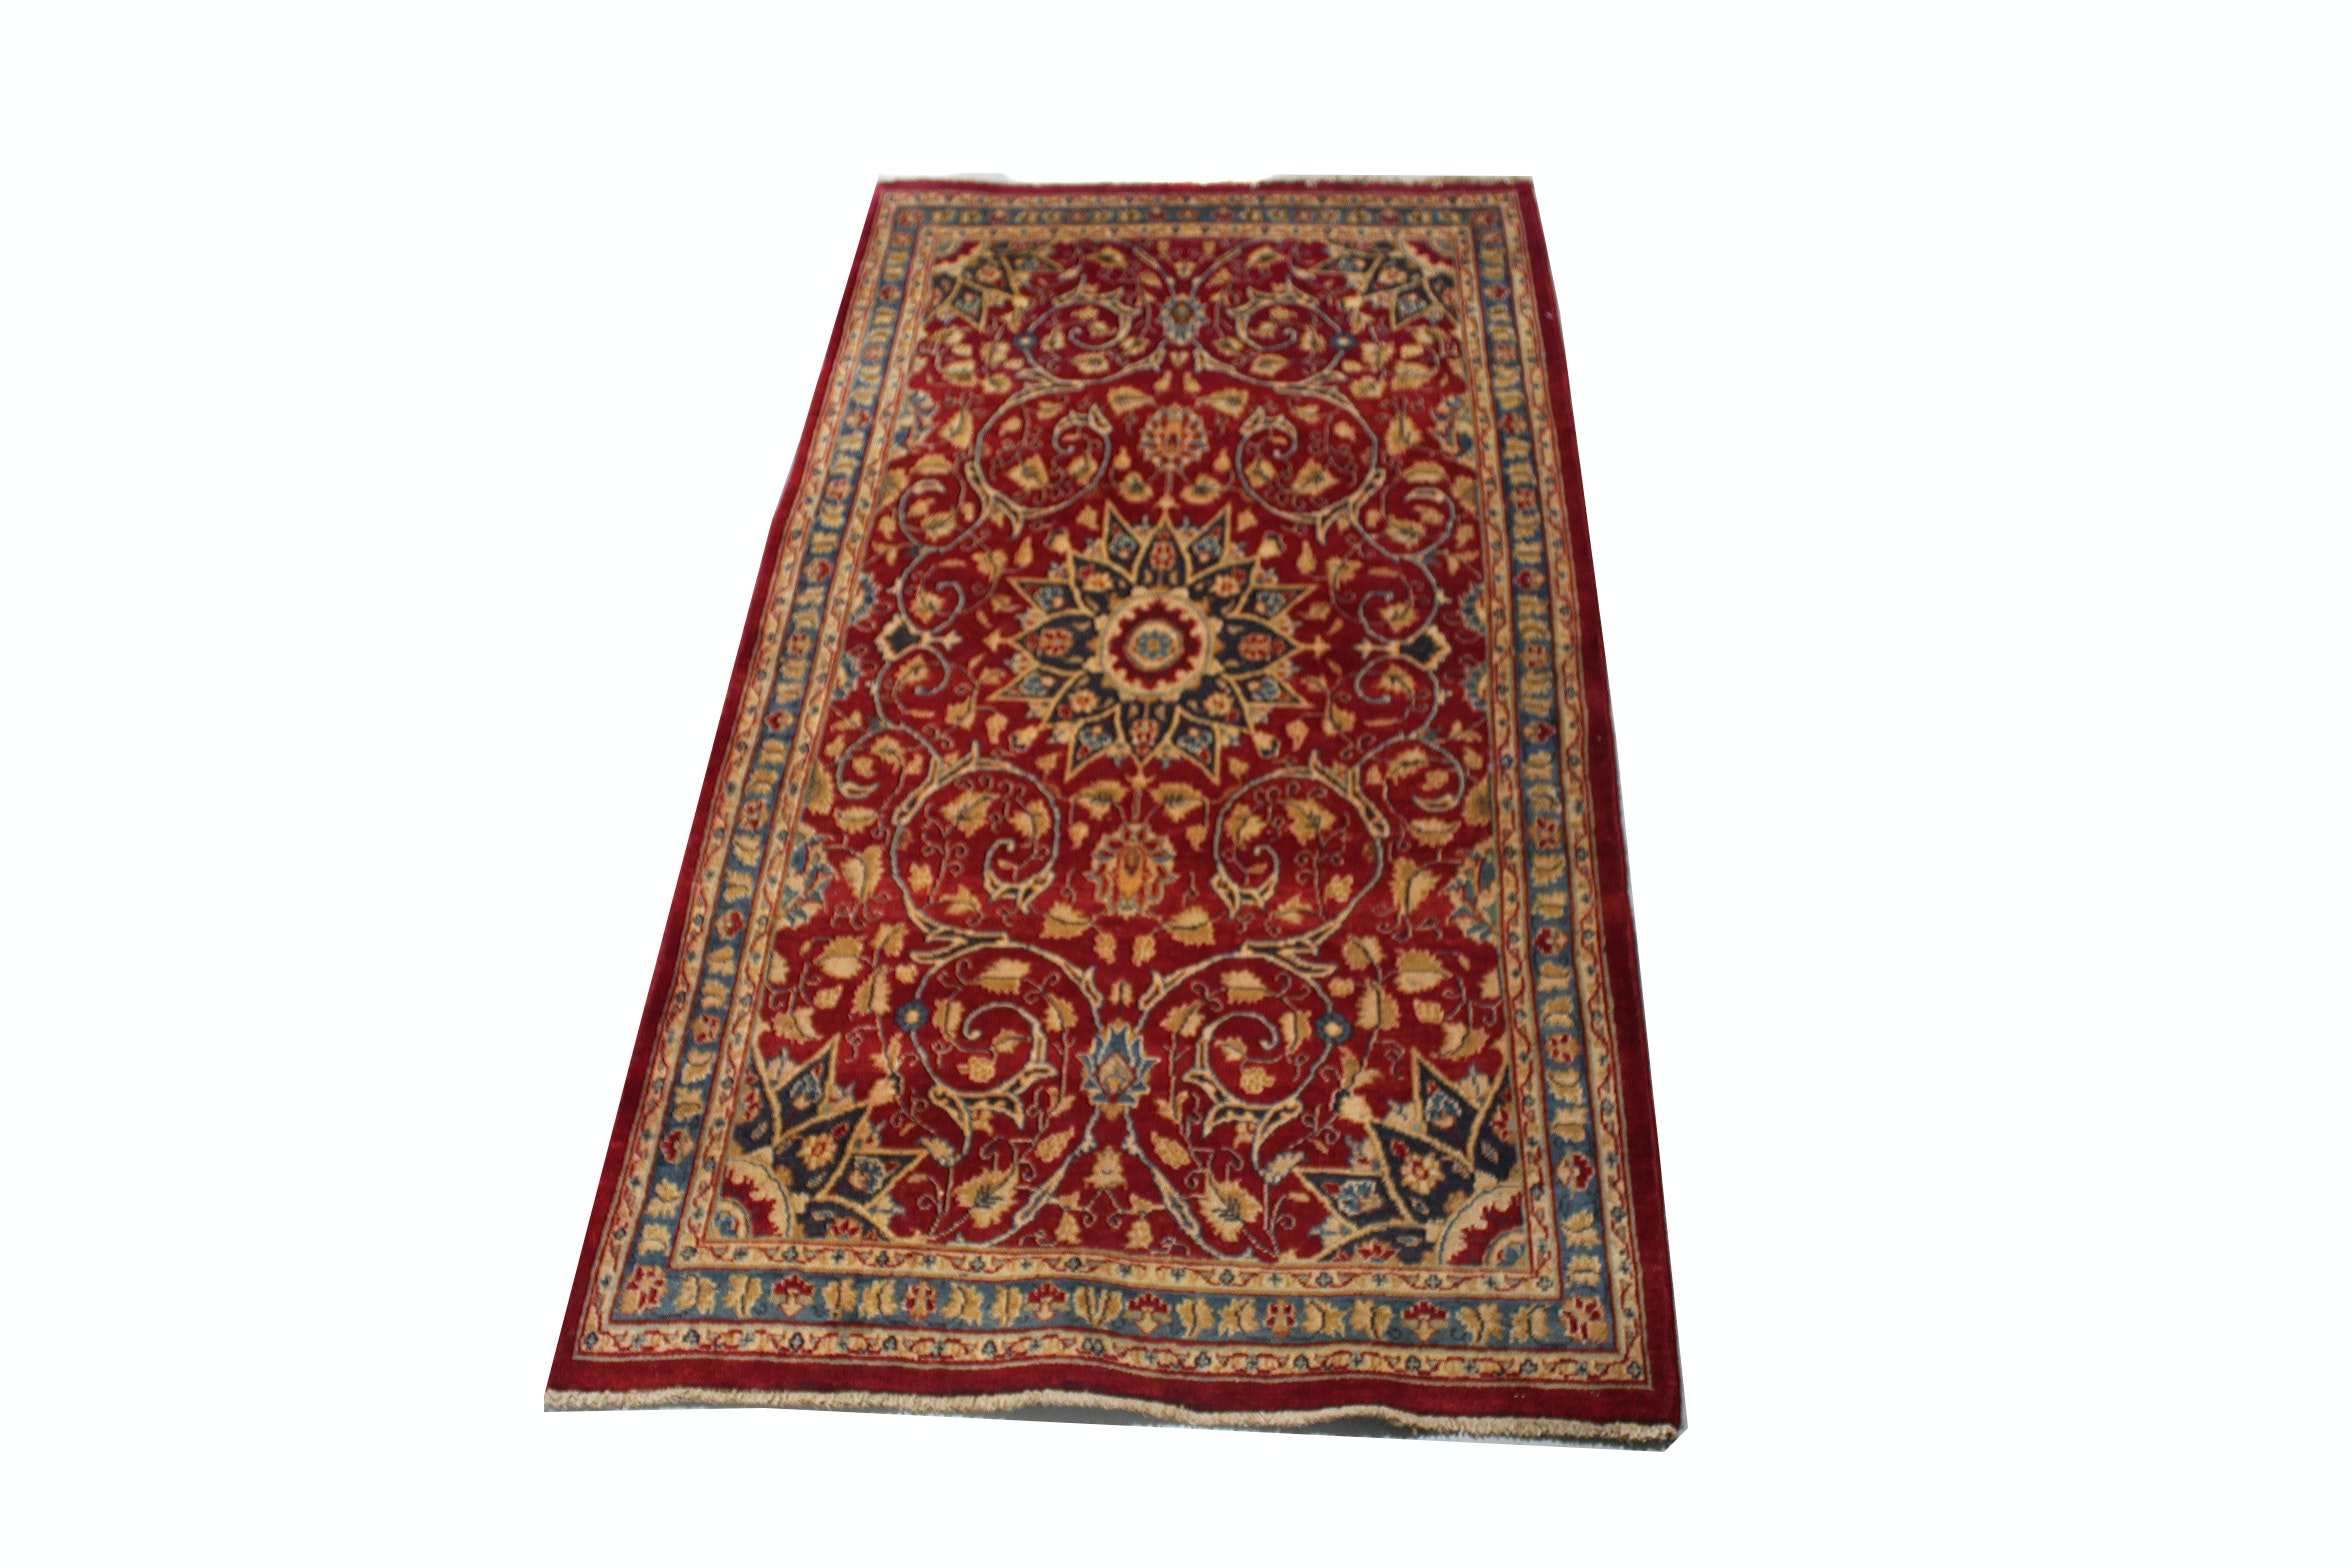 Hand-Knotted Semi-Antique Persian Kashan Rug Runner